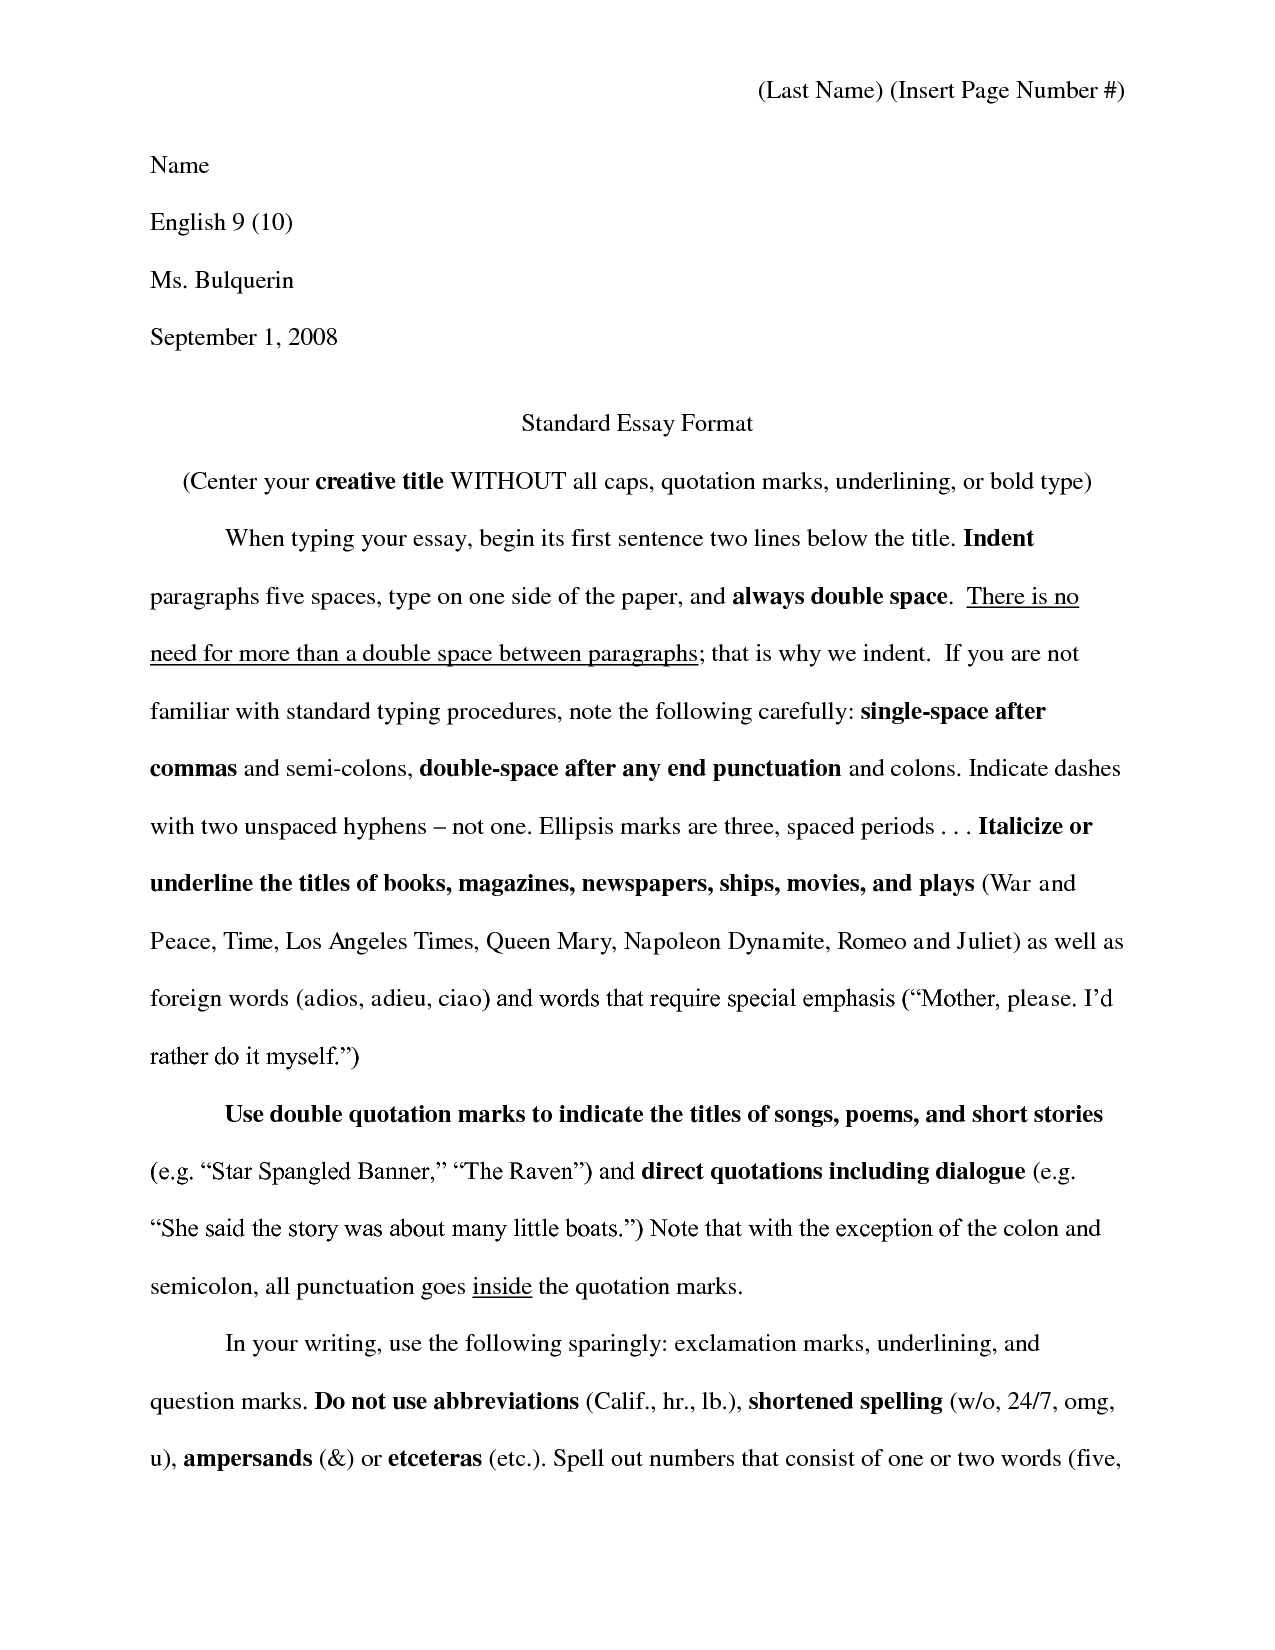 014 College Admission Essay Format Proper Heading For Application Writing Awesome Guidelines Example Examples Full